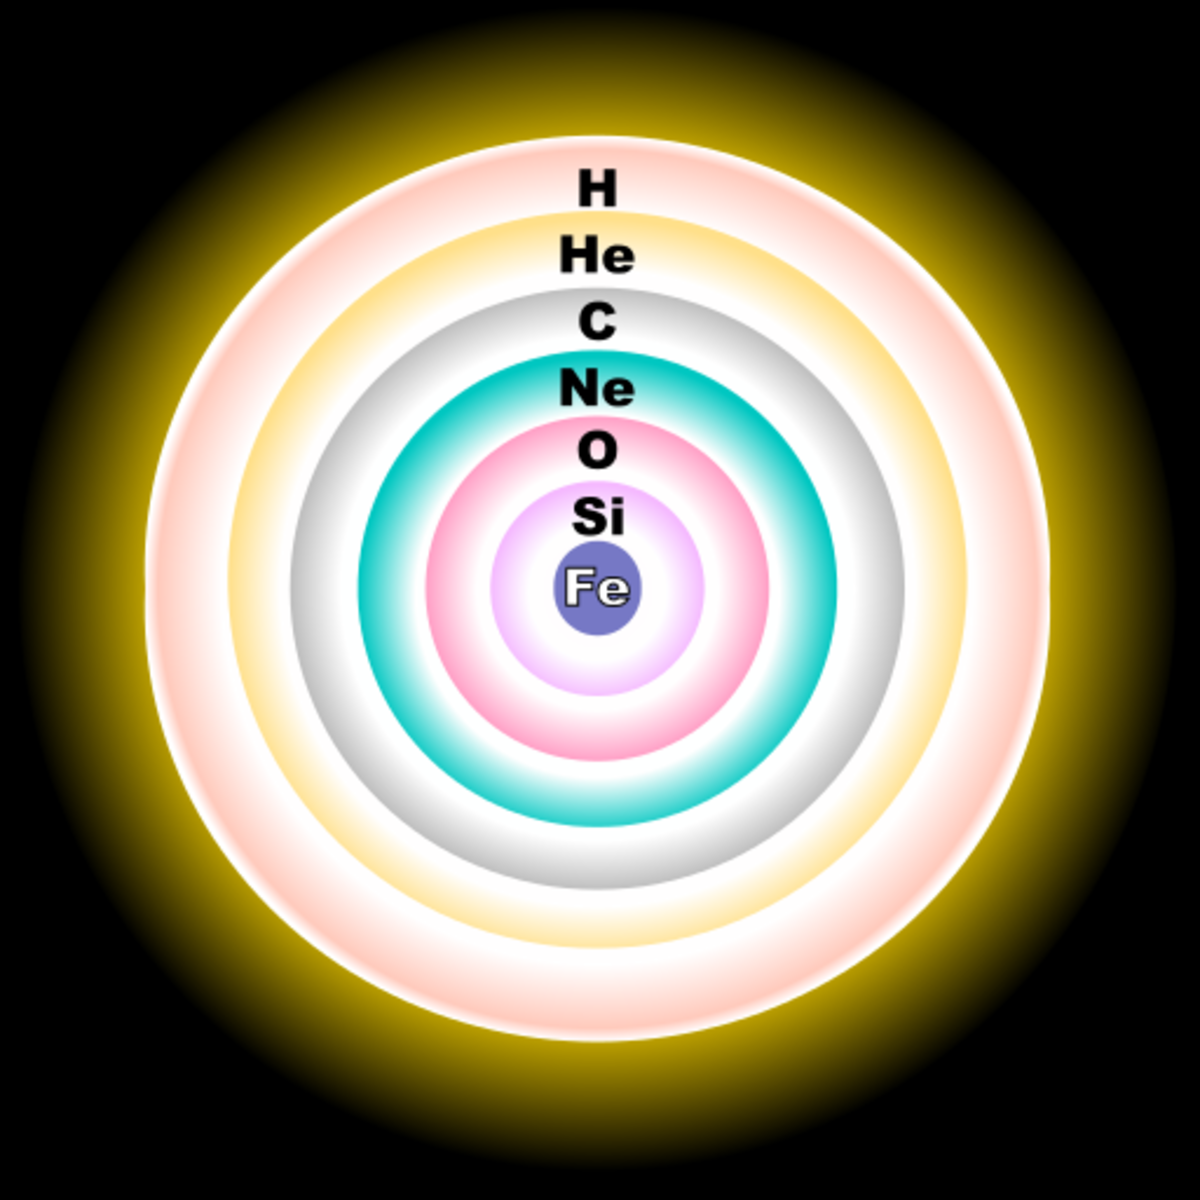 Fusion shells within a massive star. At the center is iron (Fe). Shells are not to scale.